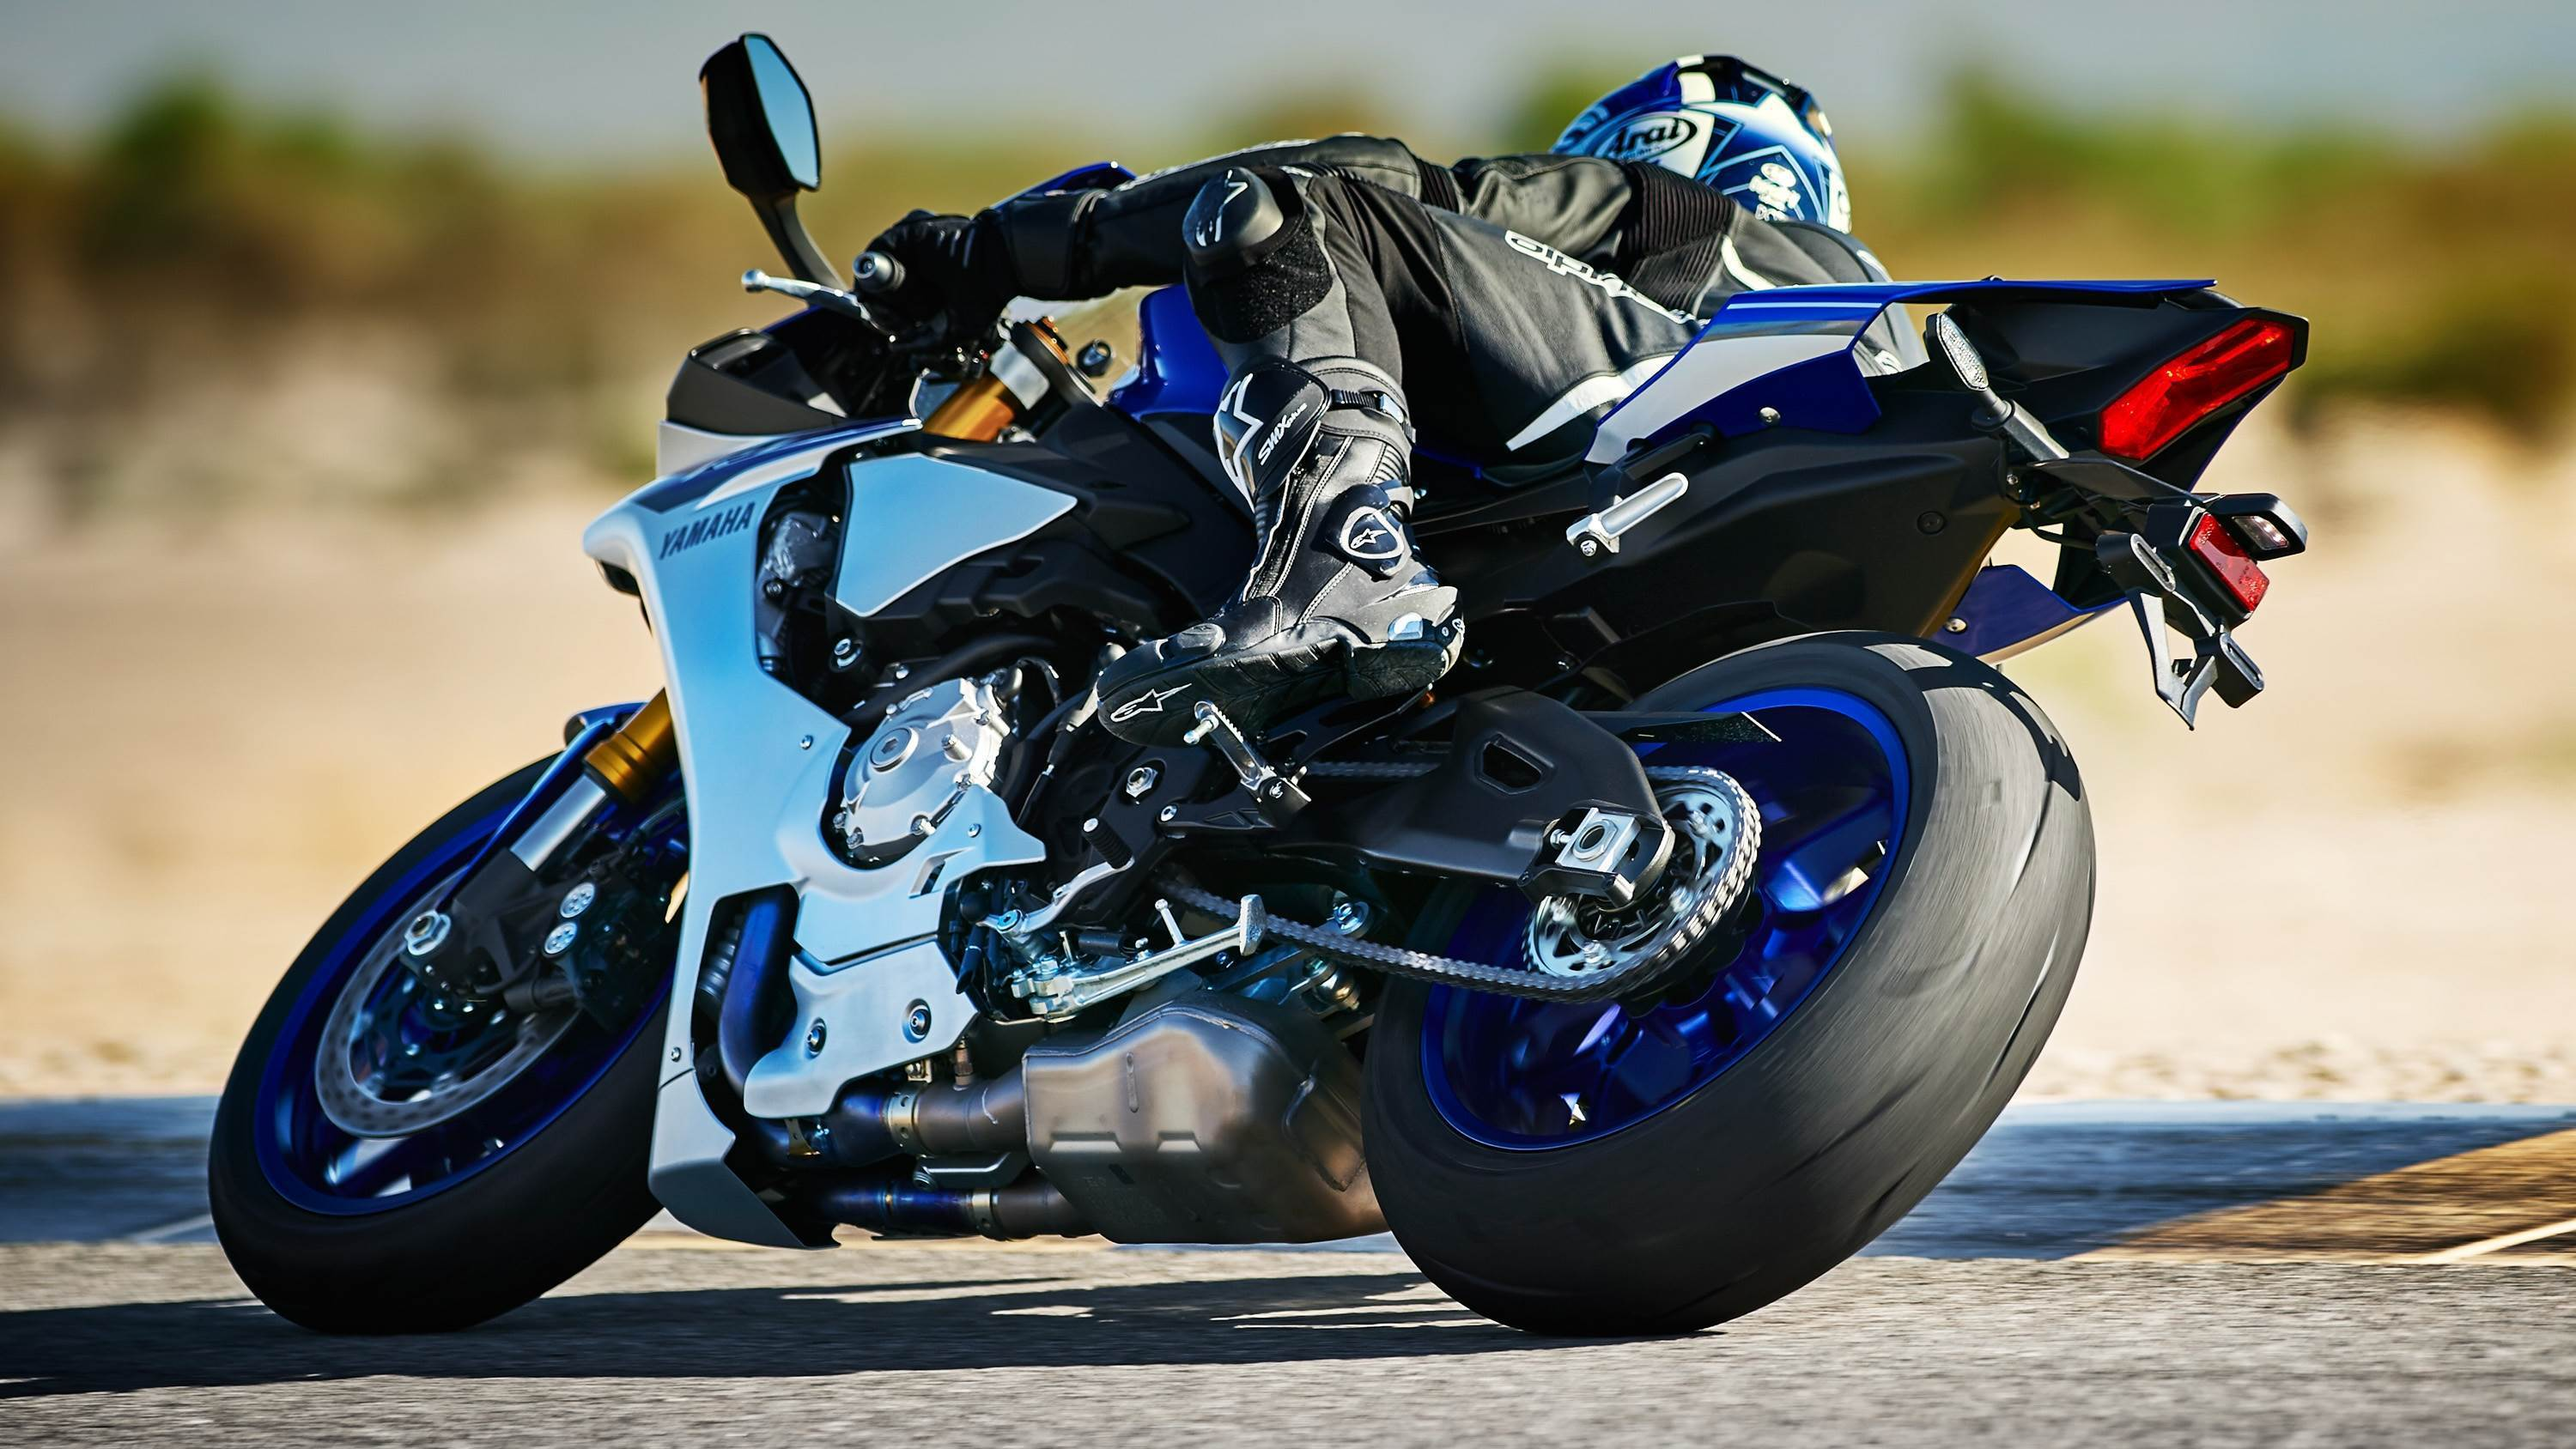 Yamaha YZF-R1M Wallpapers - Wallpaper Cave